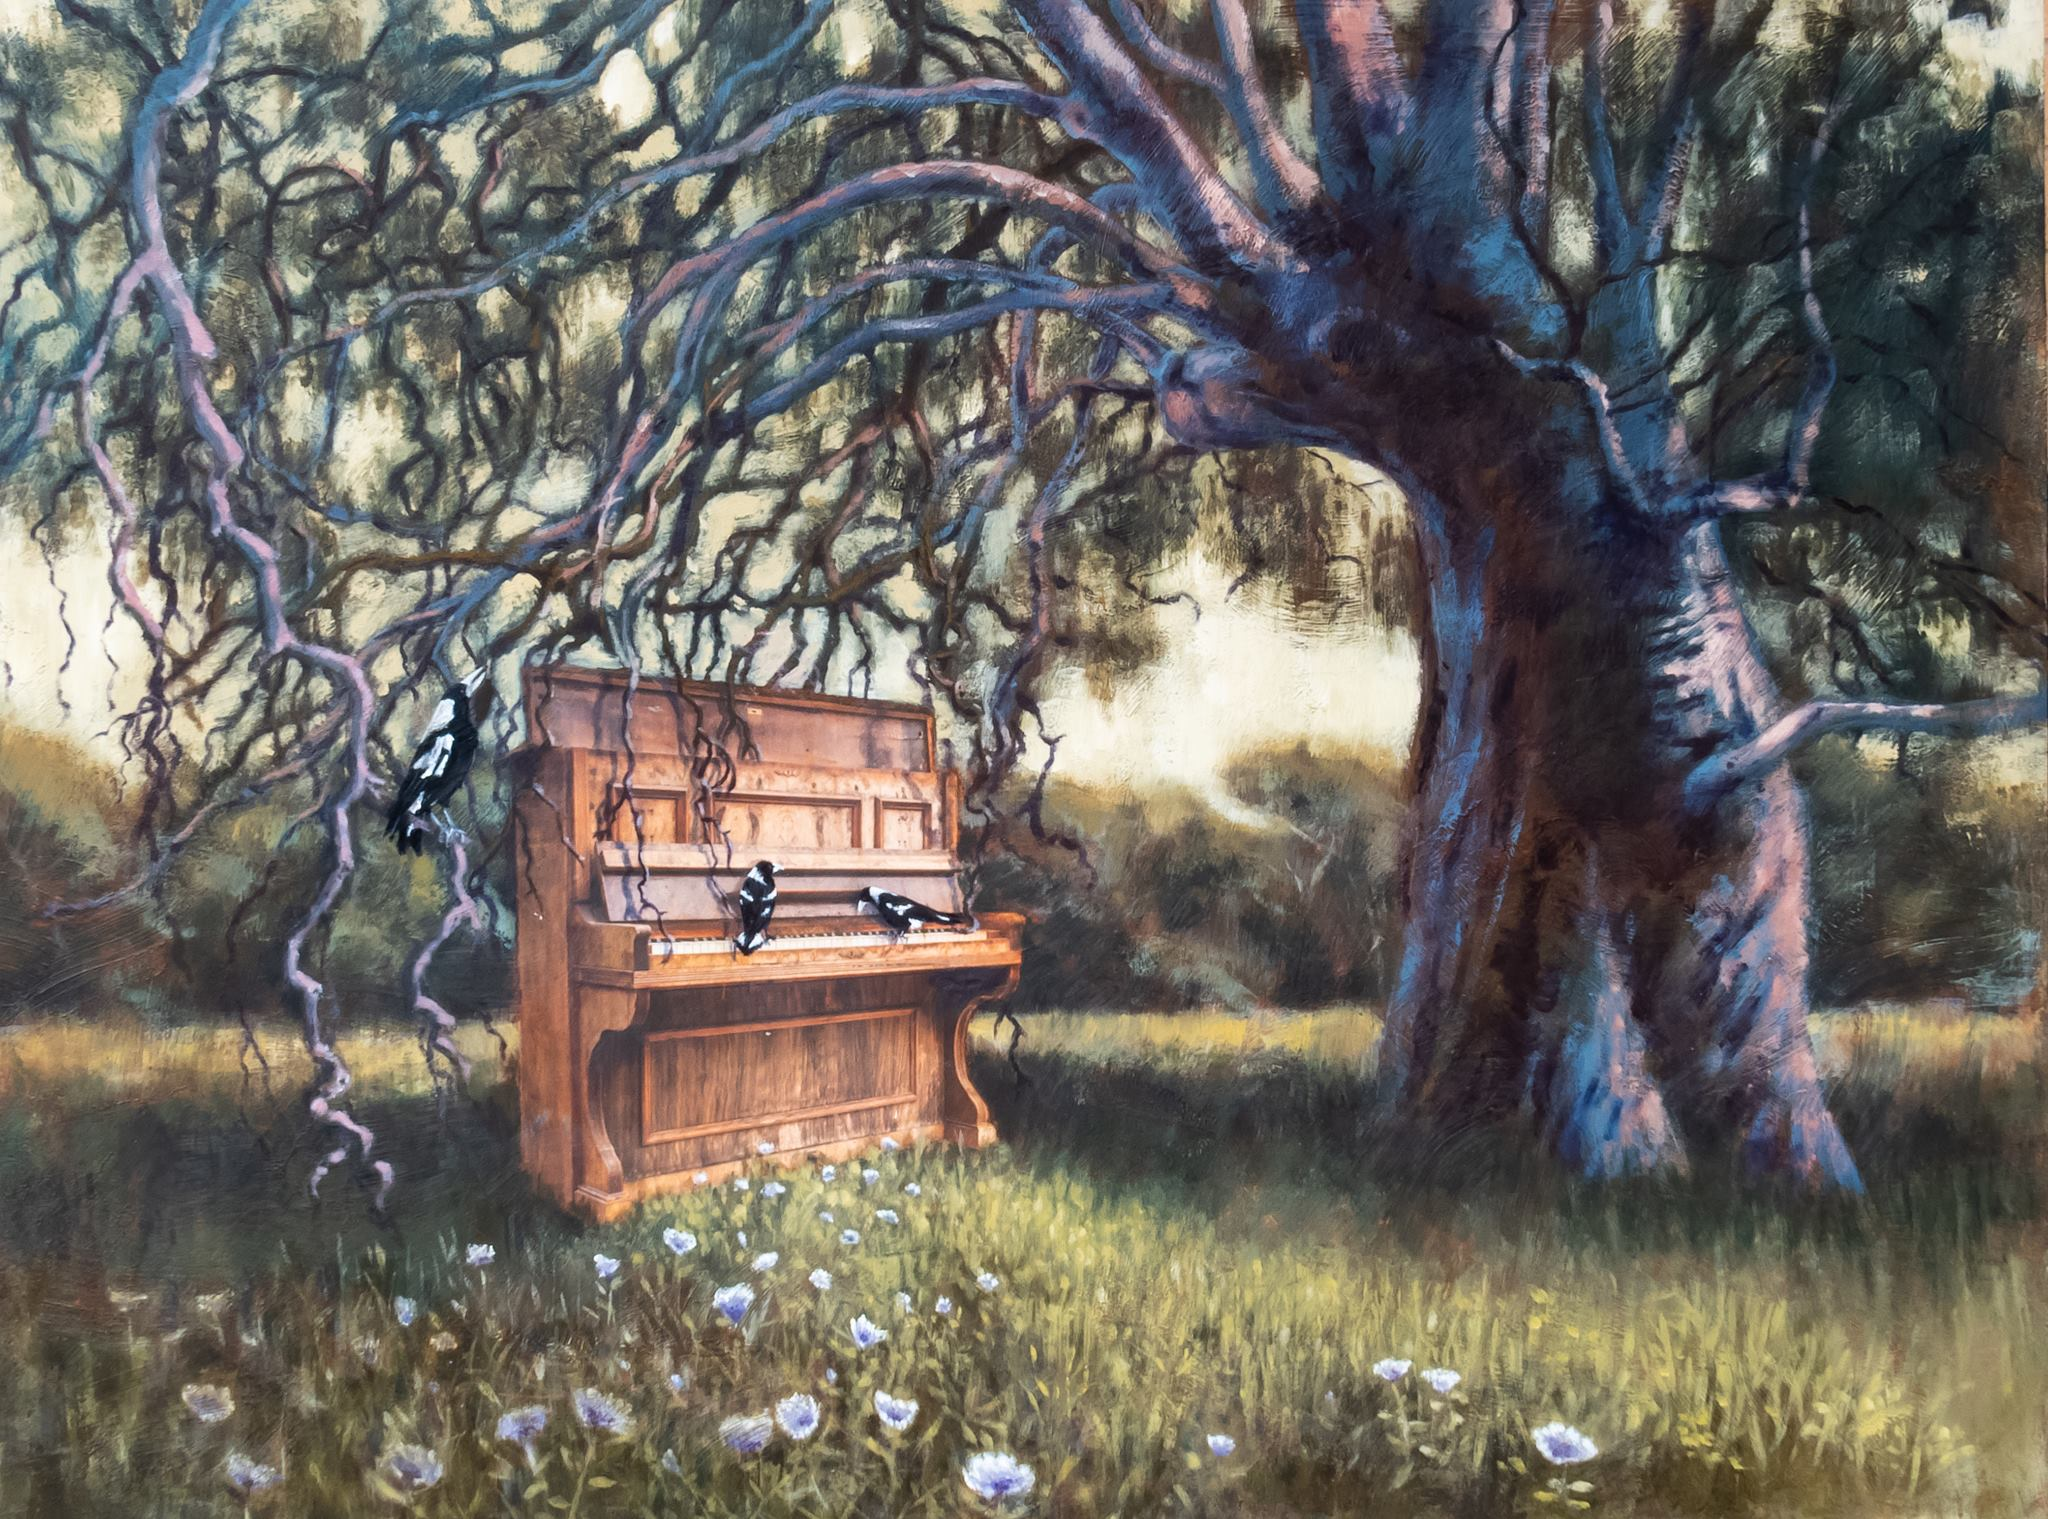 'Catching The Song' , a collaborative work by Malinda Jenner, Oliver Gerhart and Jan Burns for the Catching The Song exhibition, September 2018 at the North Adelaide Community Centre. The exhibition was in part inspired by the Murray Bridge Piano Sanctuary.